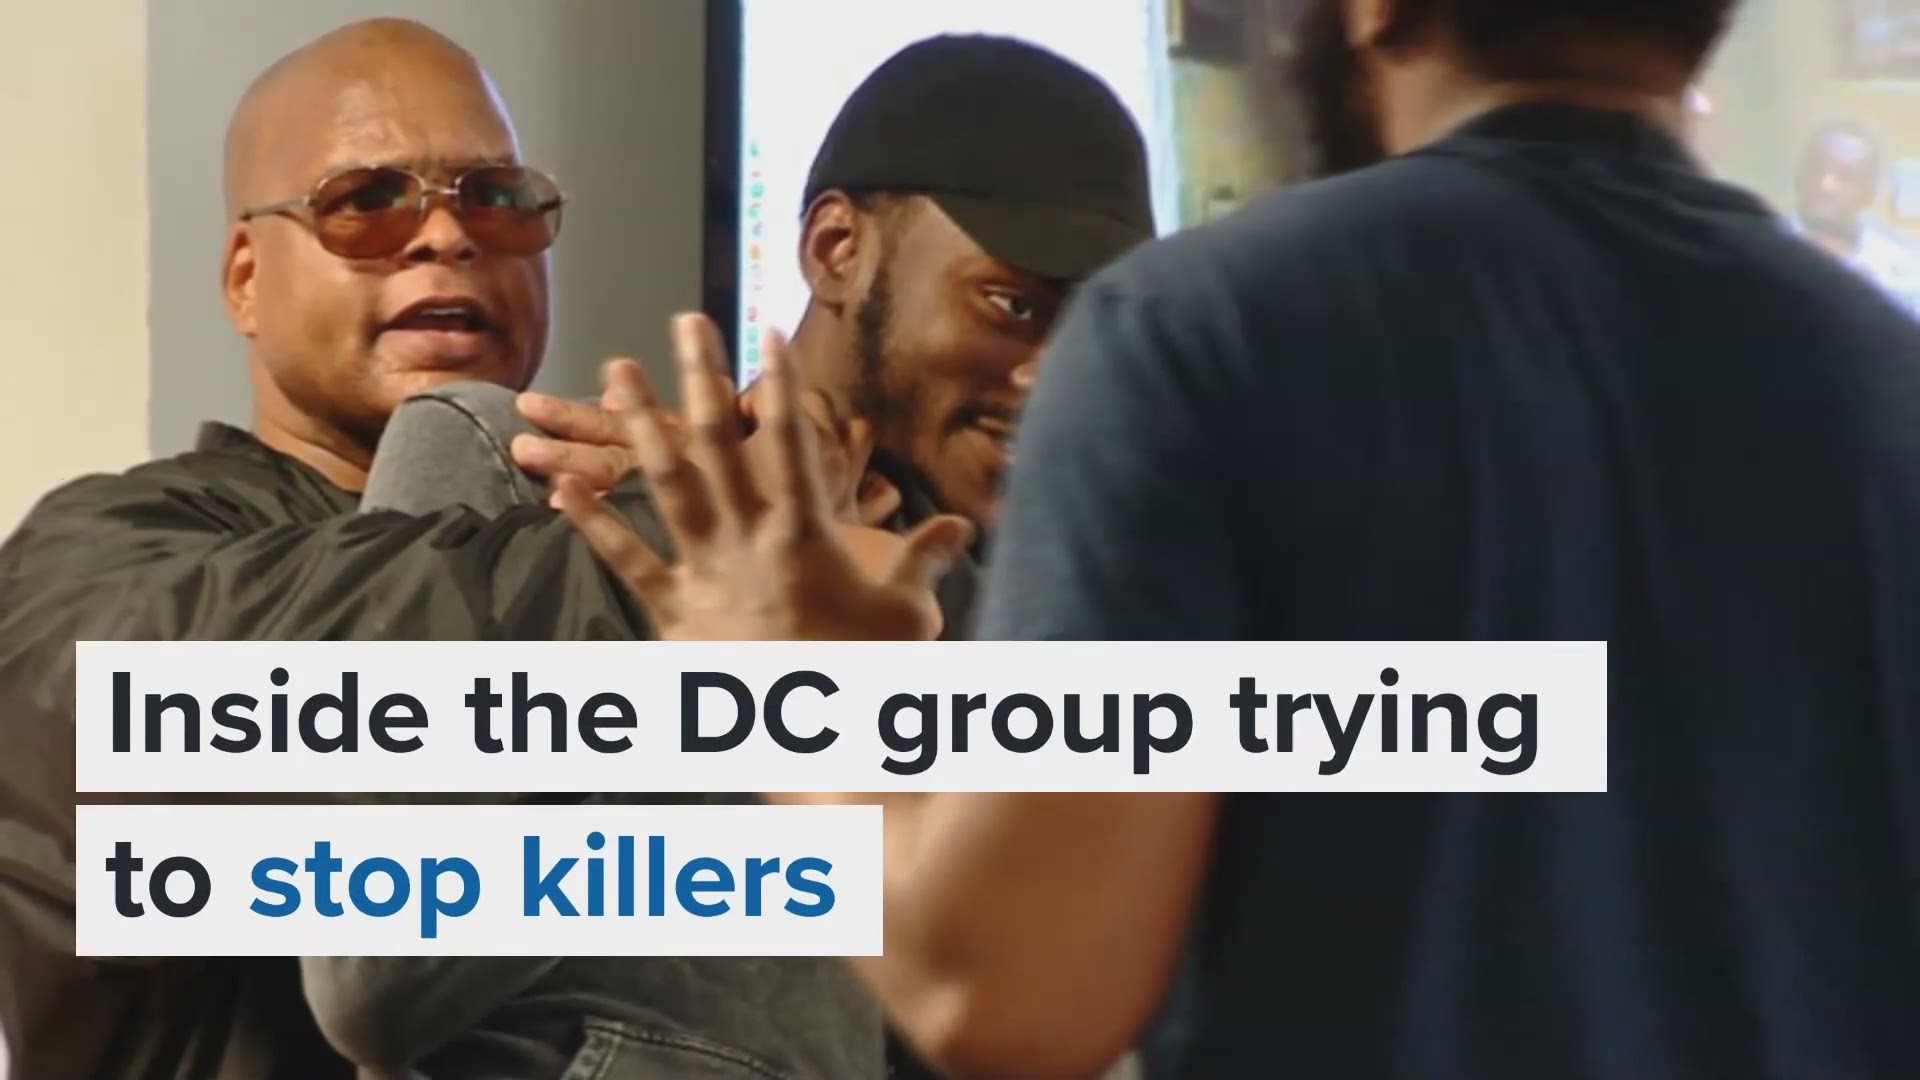 Inside the life of one of DC's most violent neighborhoods